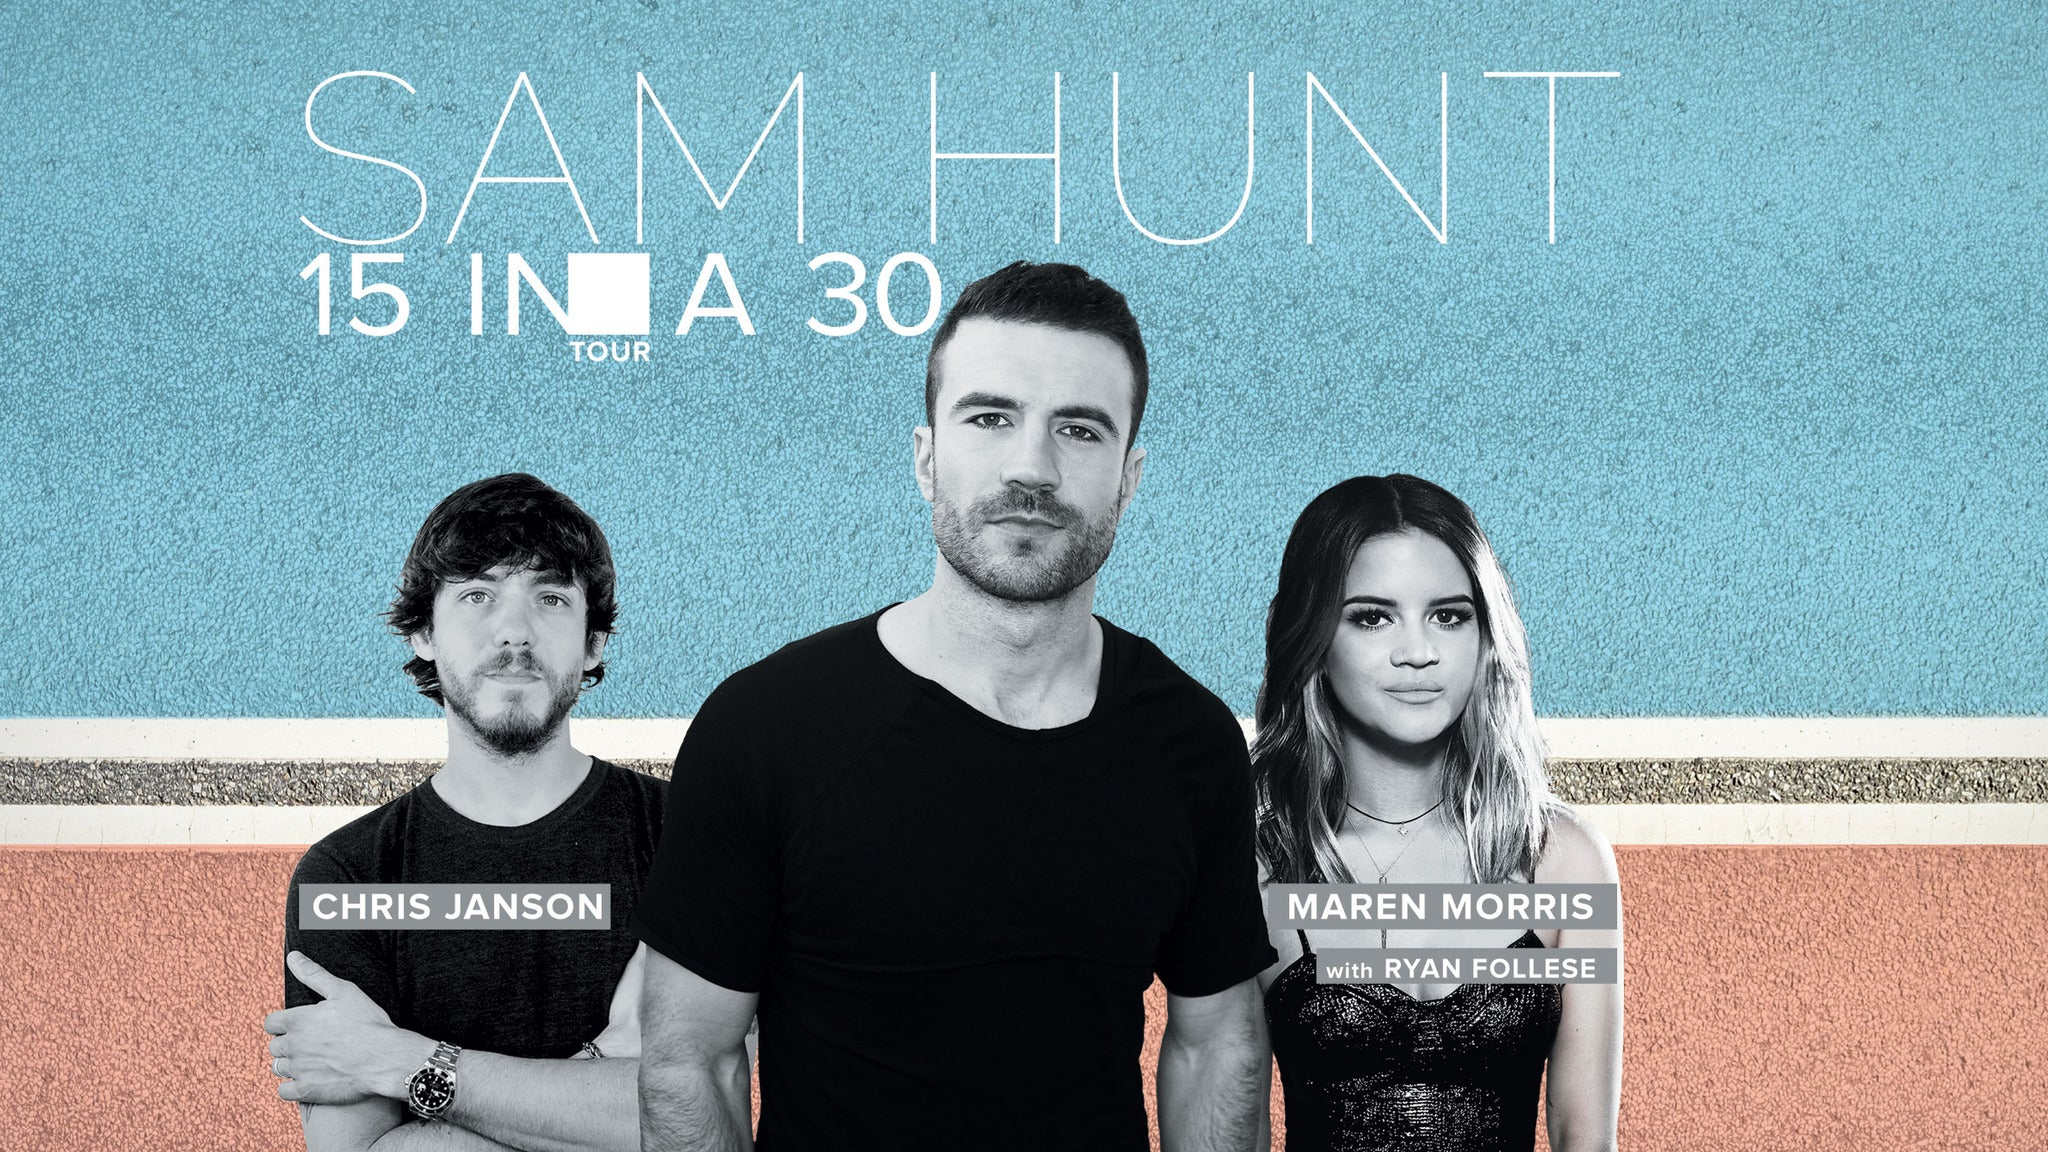 Sam Hunt 15 In A 30 Tour at Ak-Chin Pavilion